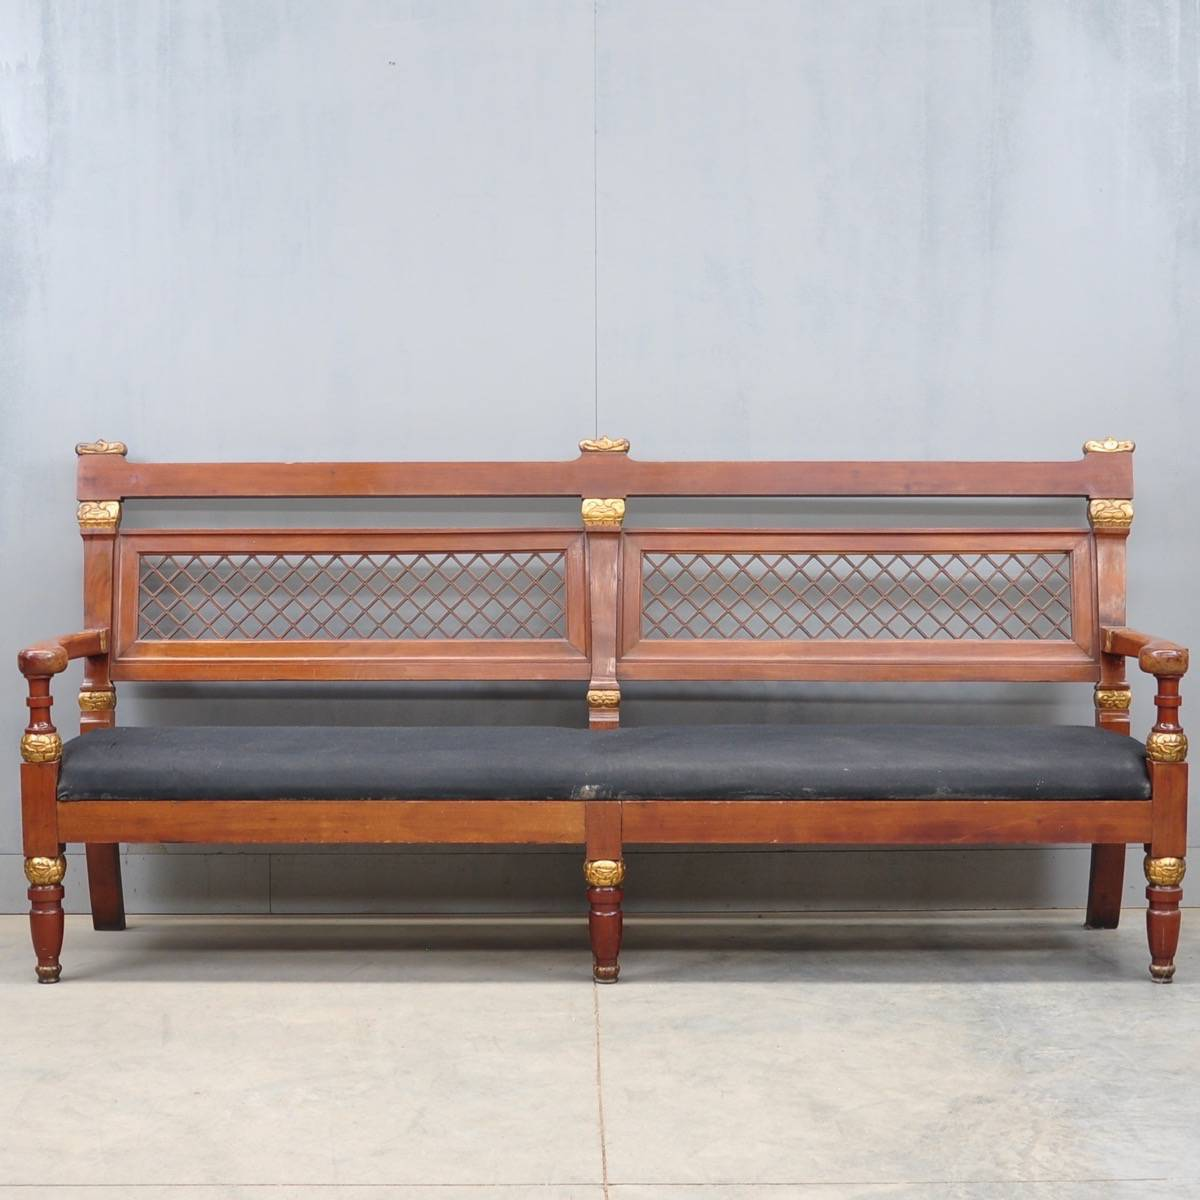 Nordic empire style hall bench de grande antique furniture for Nordic furniture style